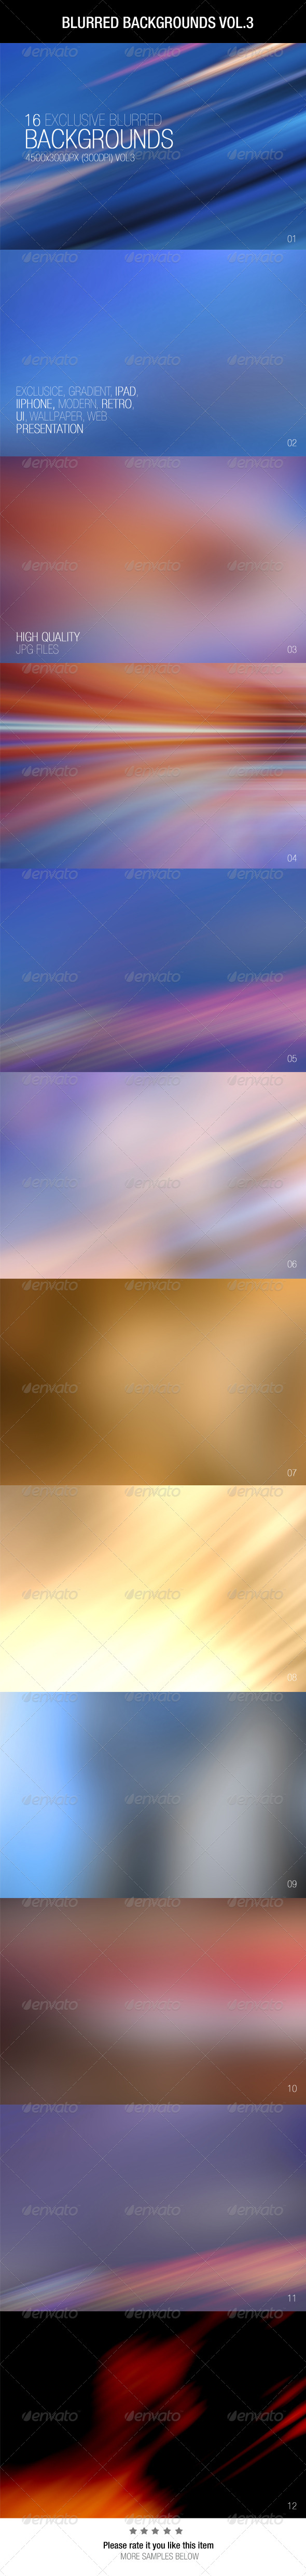 GraphicRiver Blurred Backgrounds Vol.3 6544495